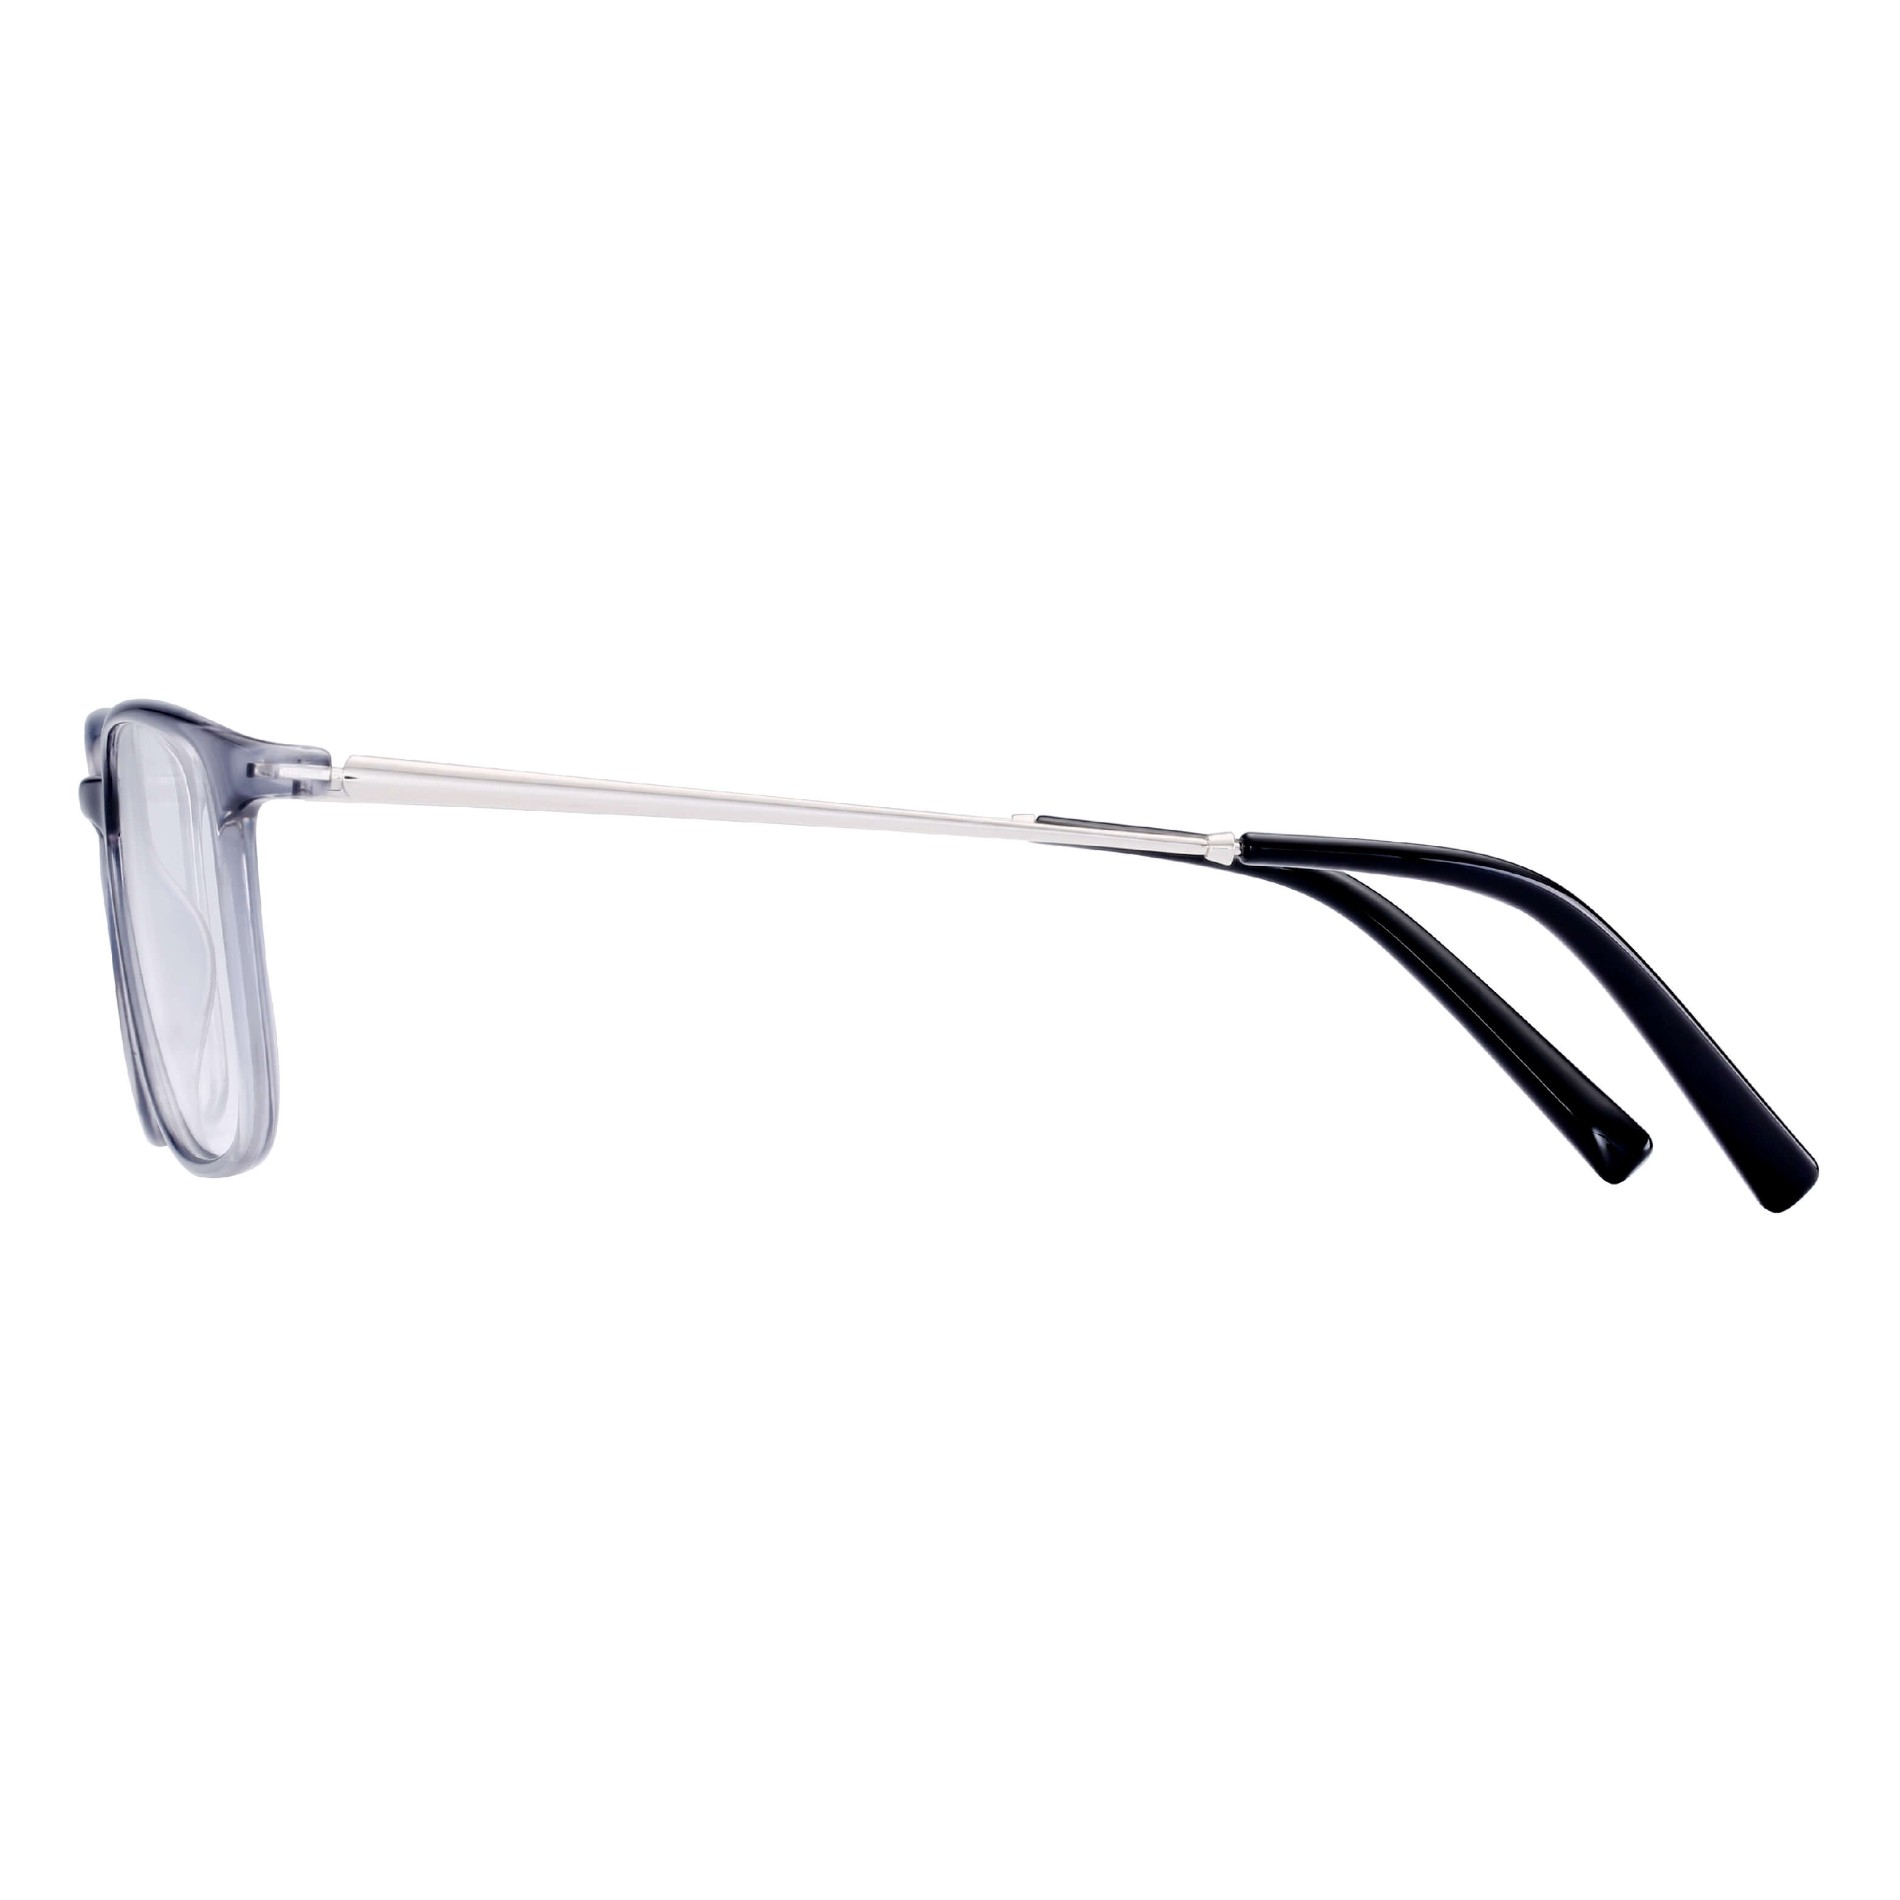 ß-Plastic Optical Frame and Metal Temple Super Thin Optiacl Frame for Women Manufacturers, ß-Plastic Optical Frame and Metal Temple Super Thin Optiacl Frame for Women Factory, Supply ß-Plastic Optical Frame and Metal Temple Super Thin Optiacl Frame for Women